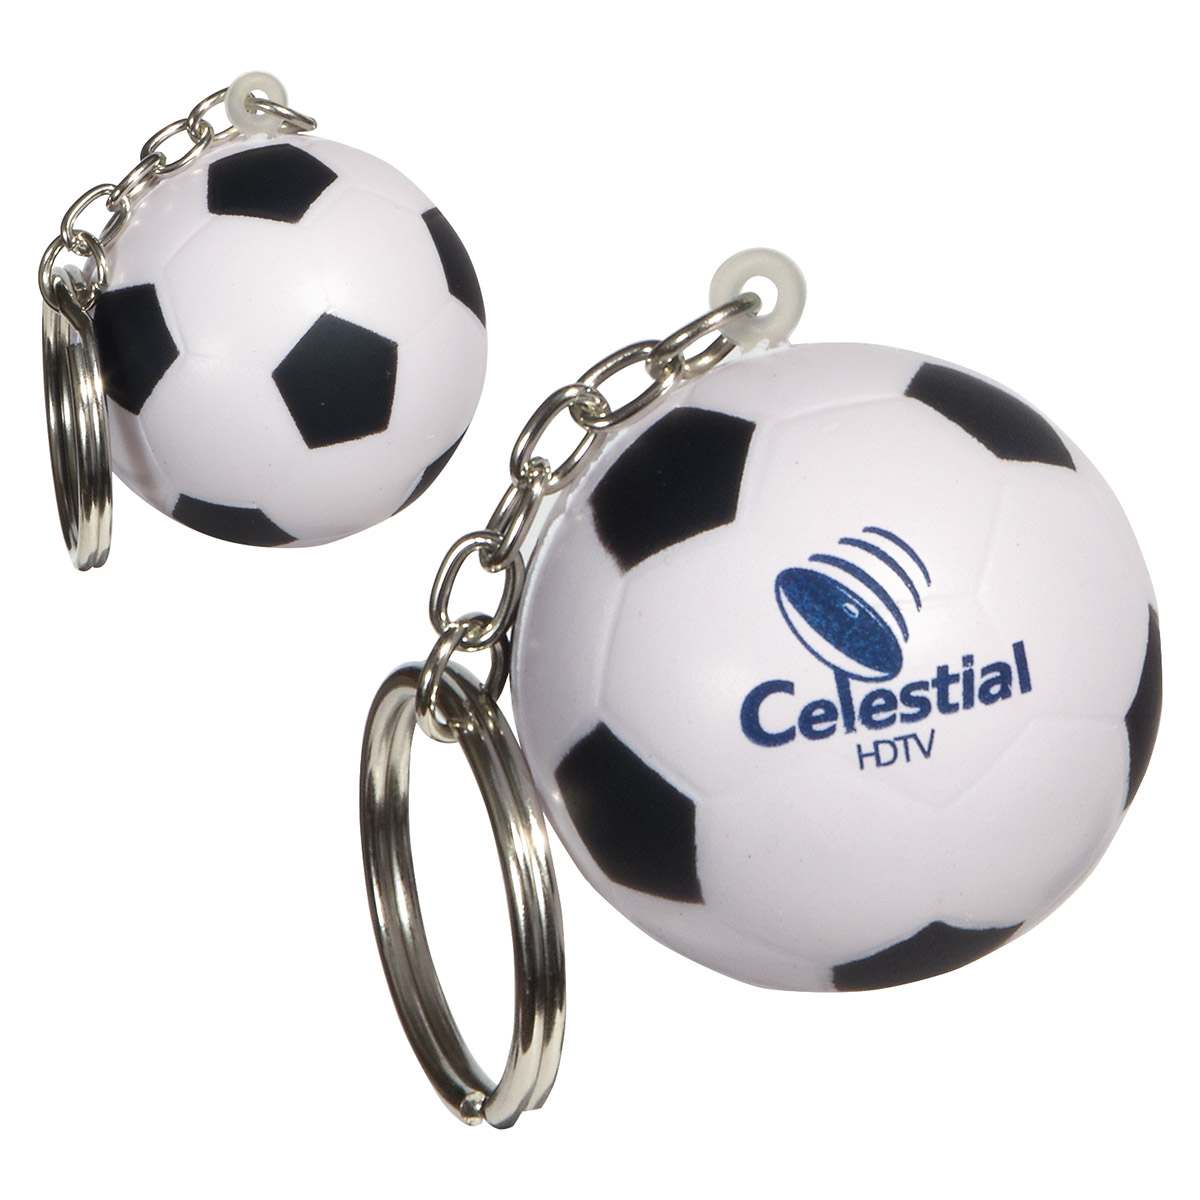 Soccer Ball Stress Reliever Keychain, LKC-SC06 - 1 Colour Imprint